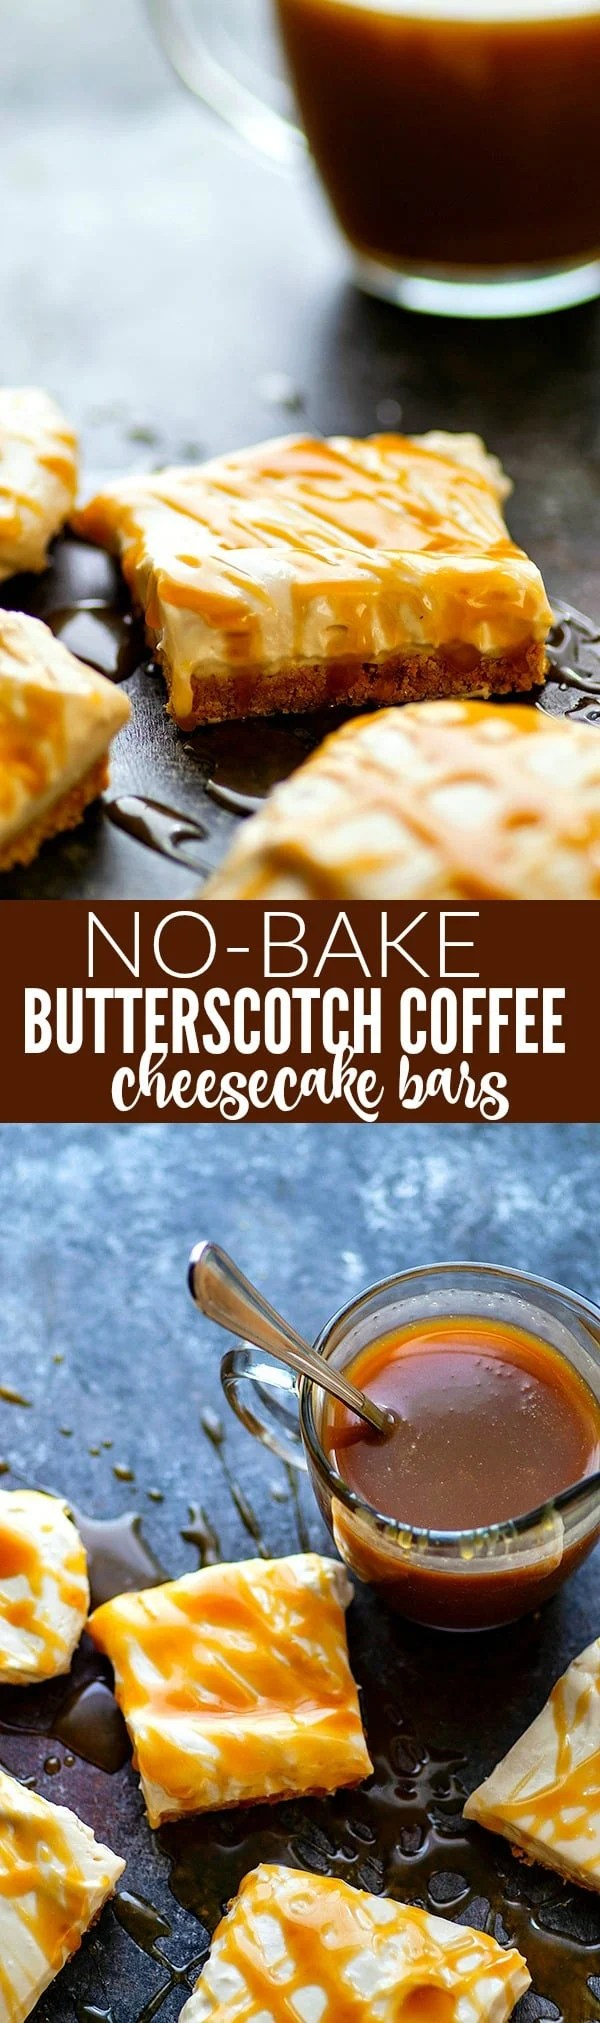 Creamy no-bake butterscotch coffee cheesecake bars are the PERFECT dessert to have on hand in your fridge! Pile these cheesecake beauties high with lots of homemade butterscotch sauce.